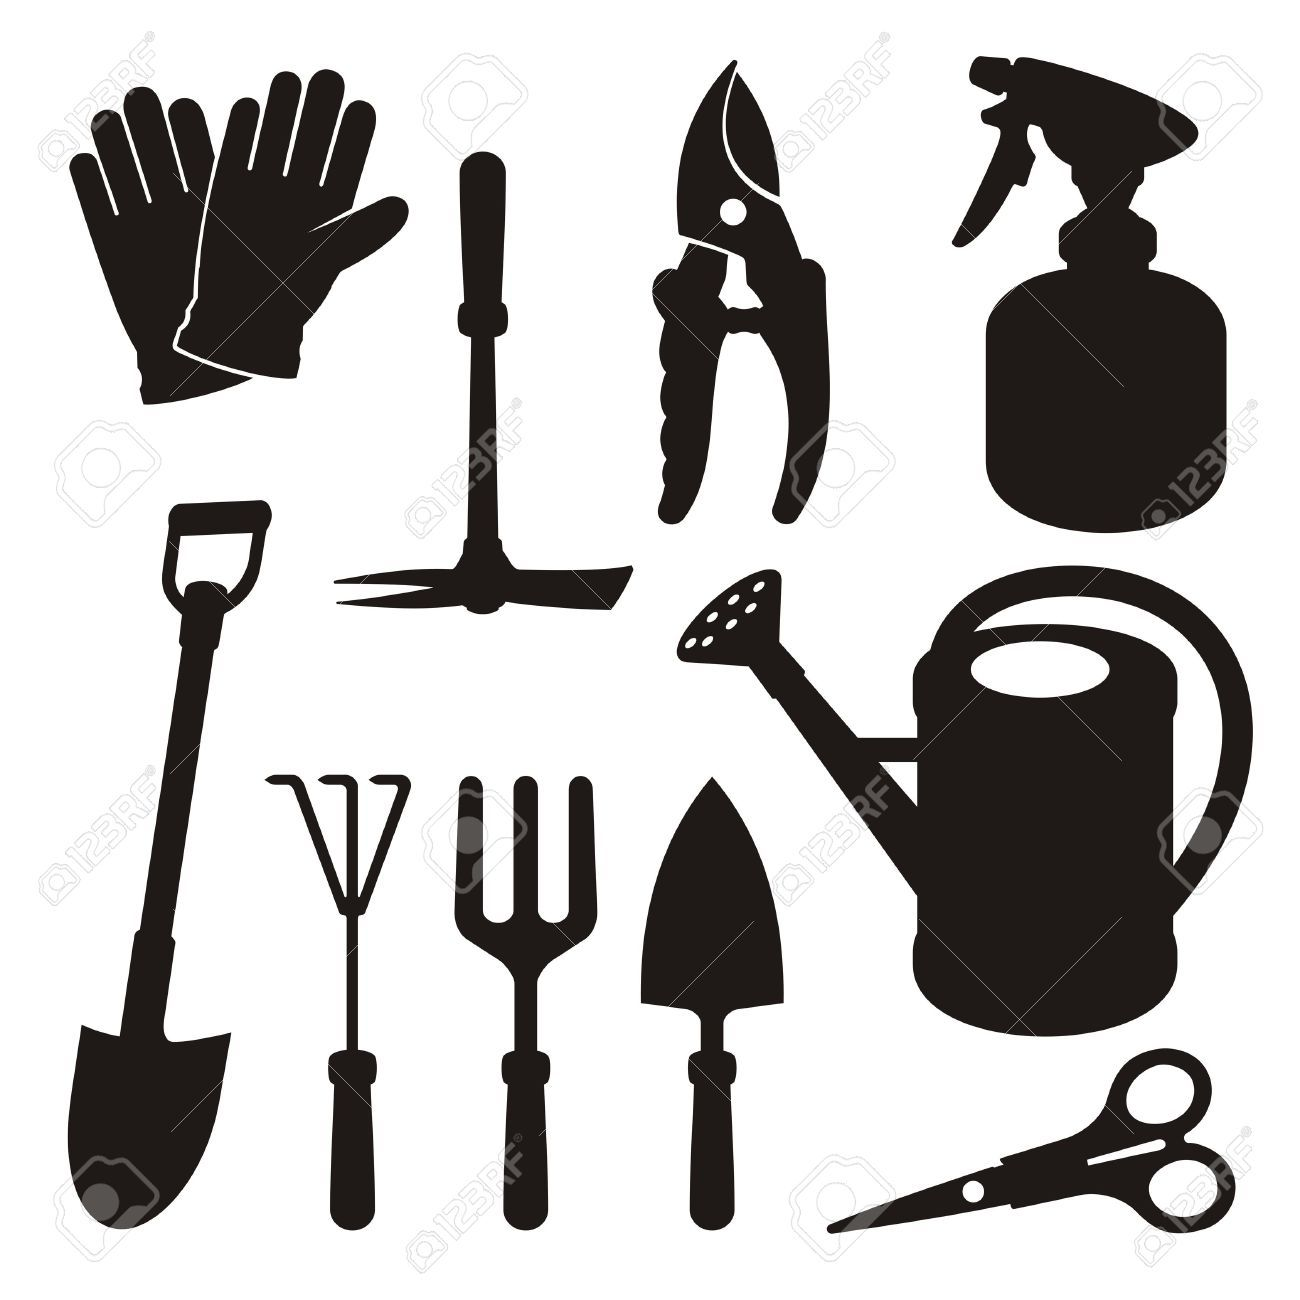 Gardening Tools Stock Illustrations, Cliparts And Royalty.